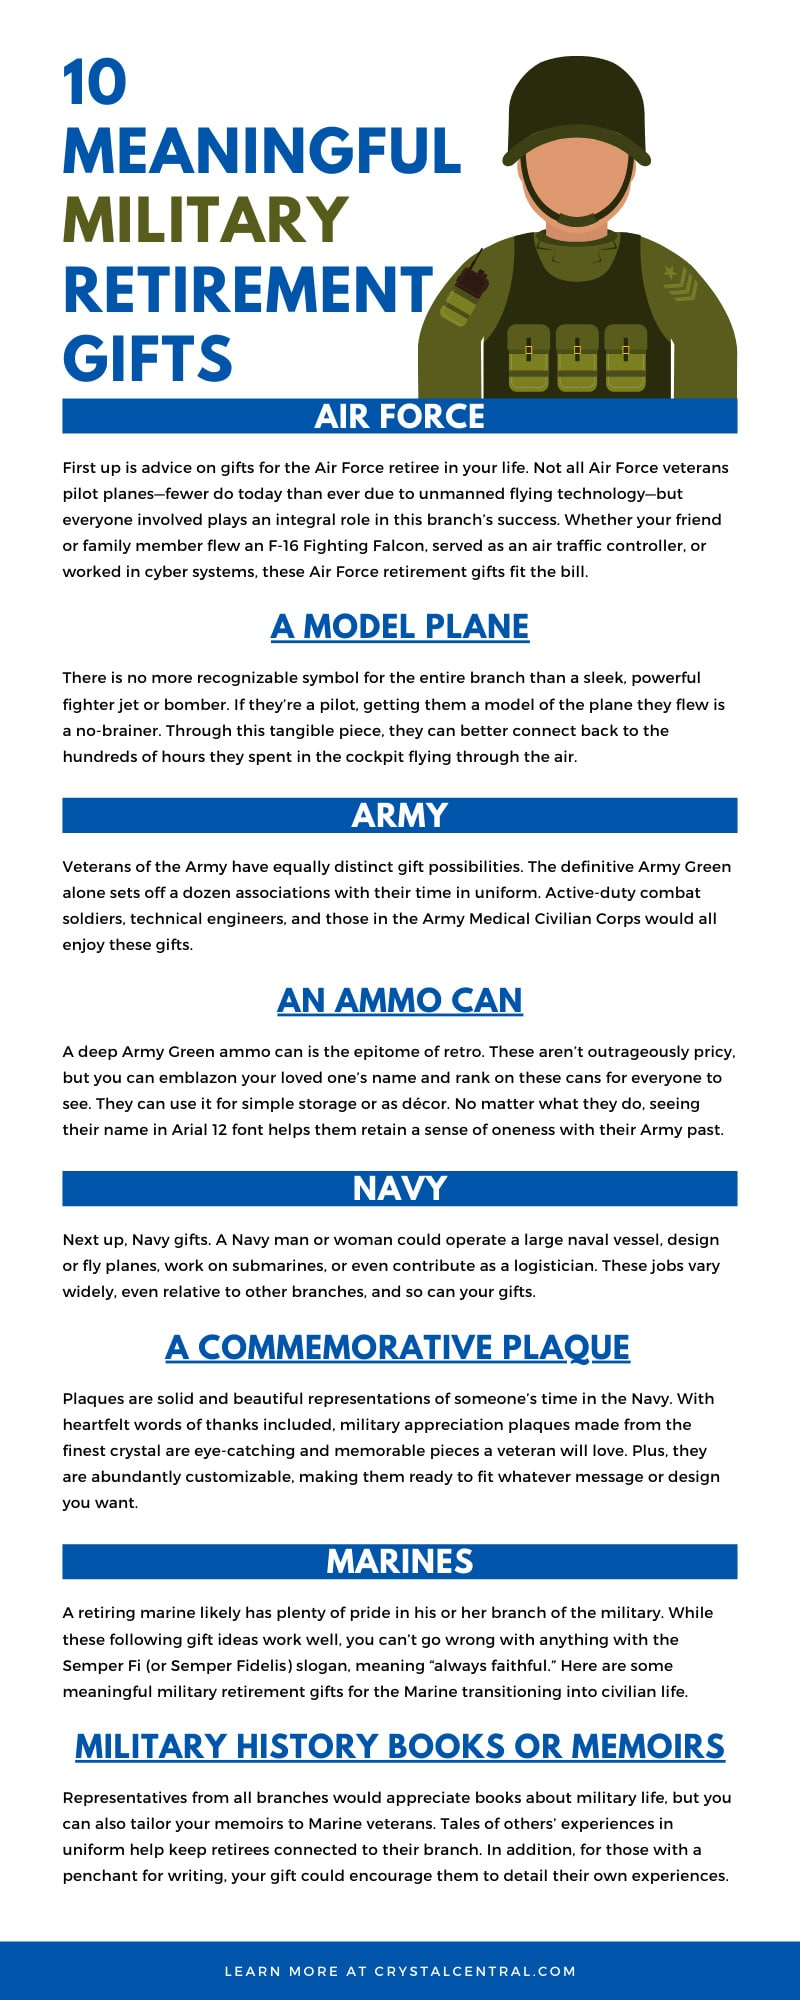 10 Meaningful Military Retirement Gifts